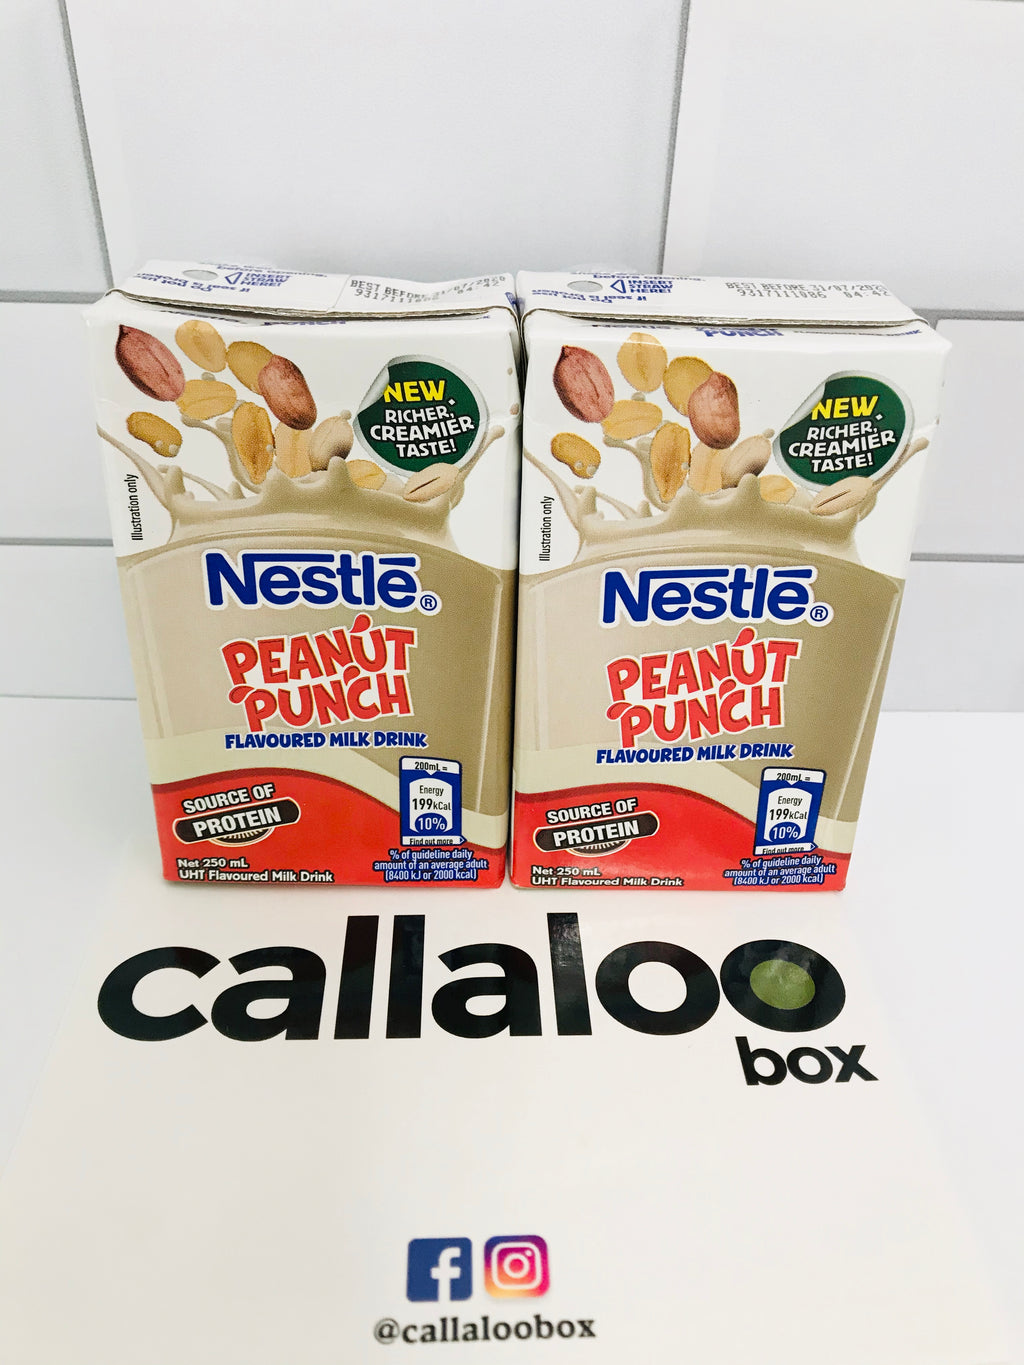 Callaloo Box Trinidad and Tobago Subscription Box Caribbean Online Grocery_Nestle Peanut Punch_2pack